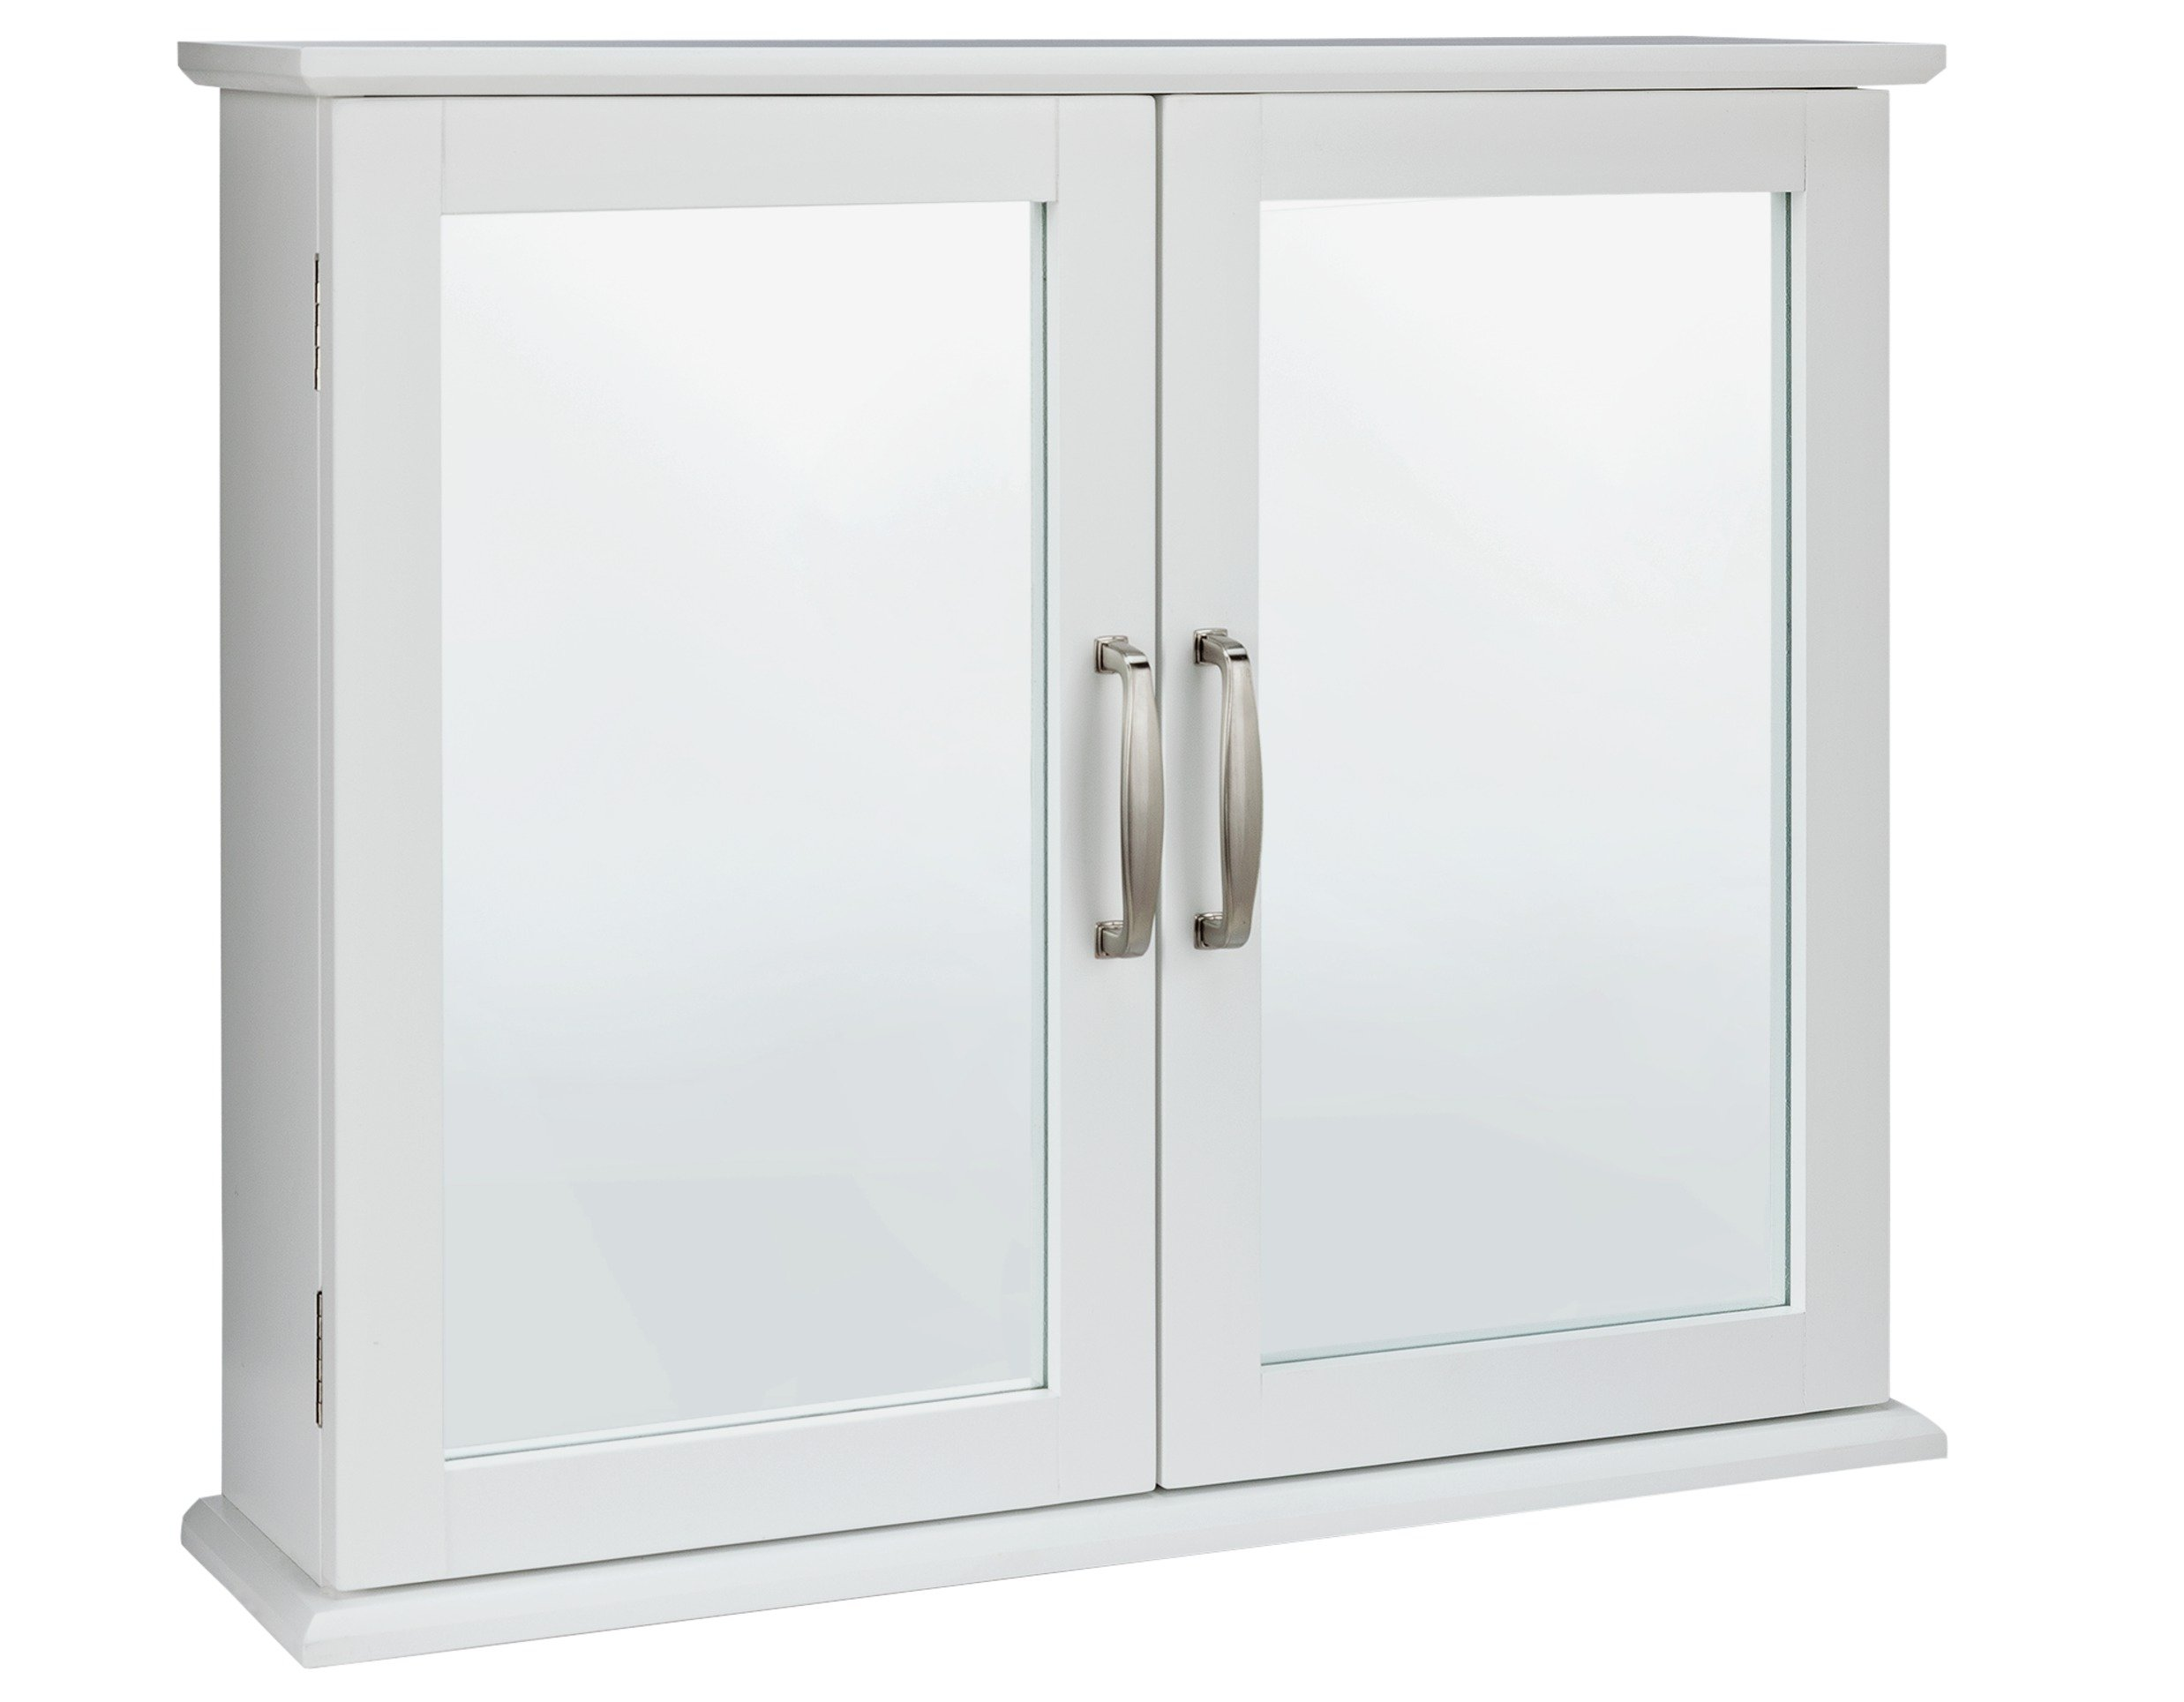 Image of Collection New Tongue and Groove Mirrored Wall Cabinet-White